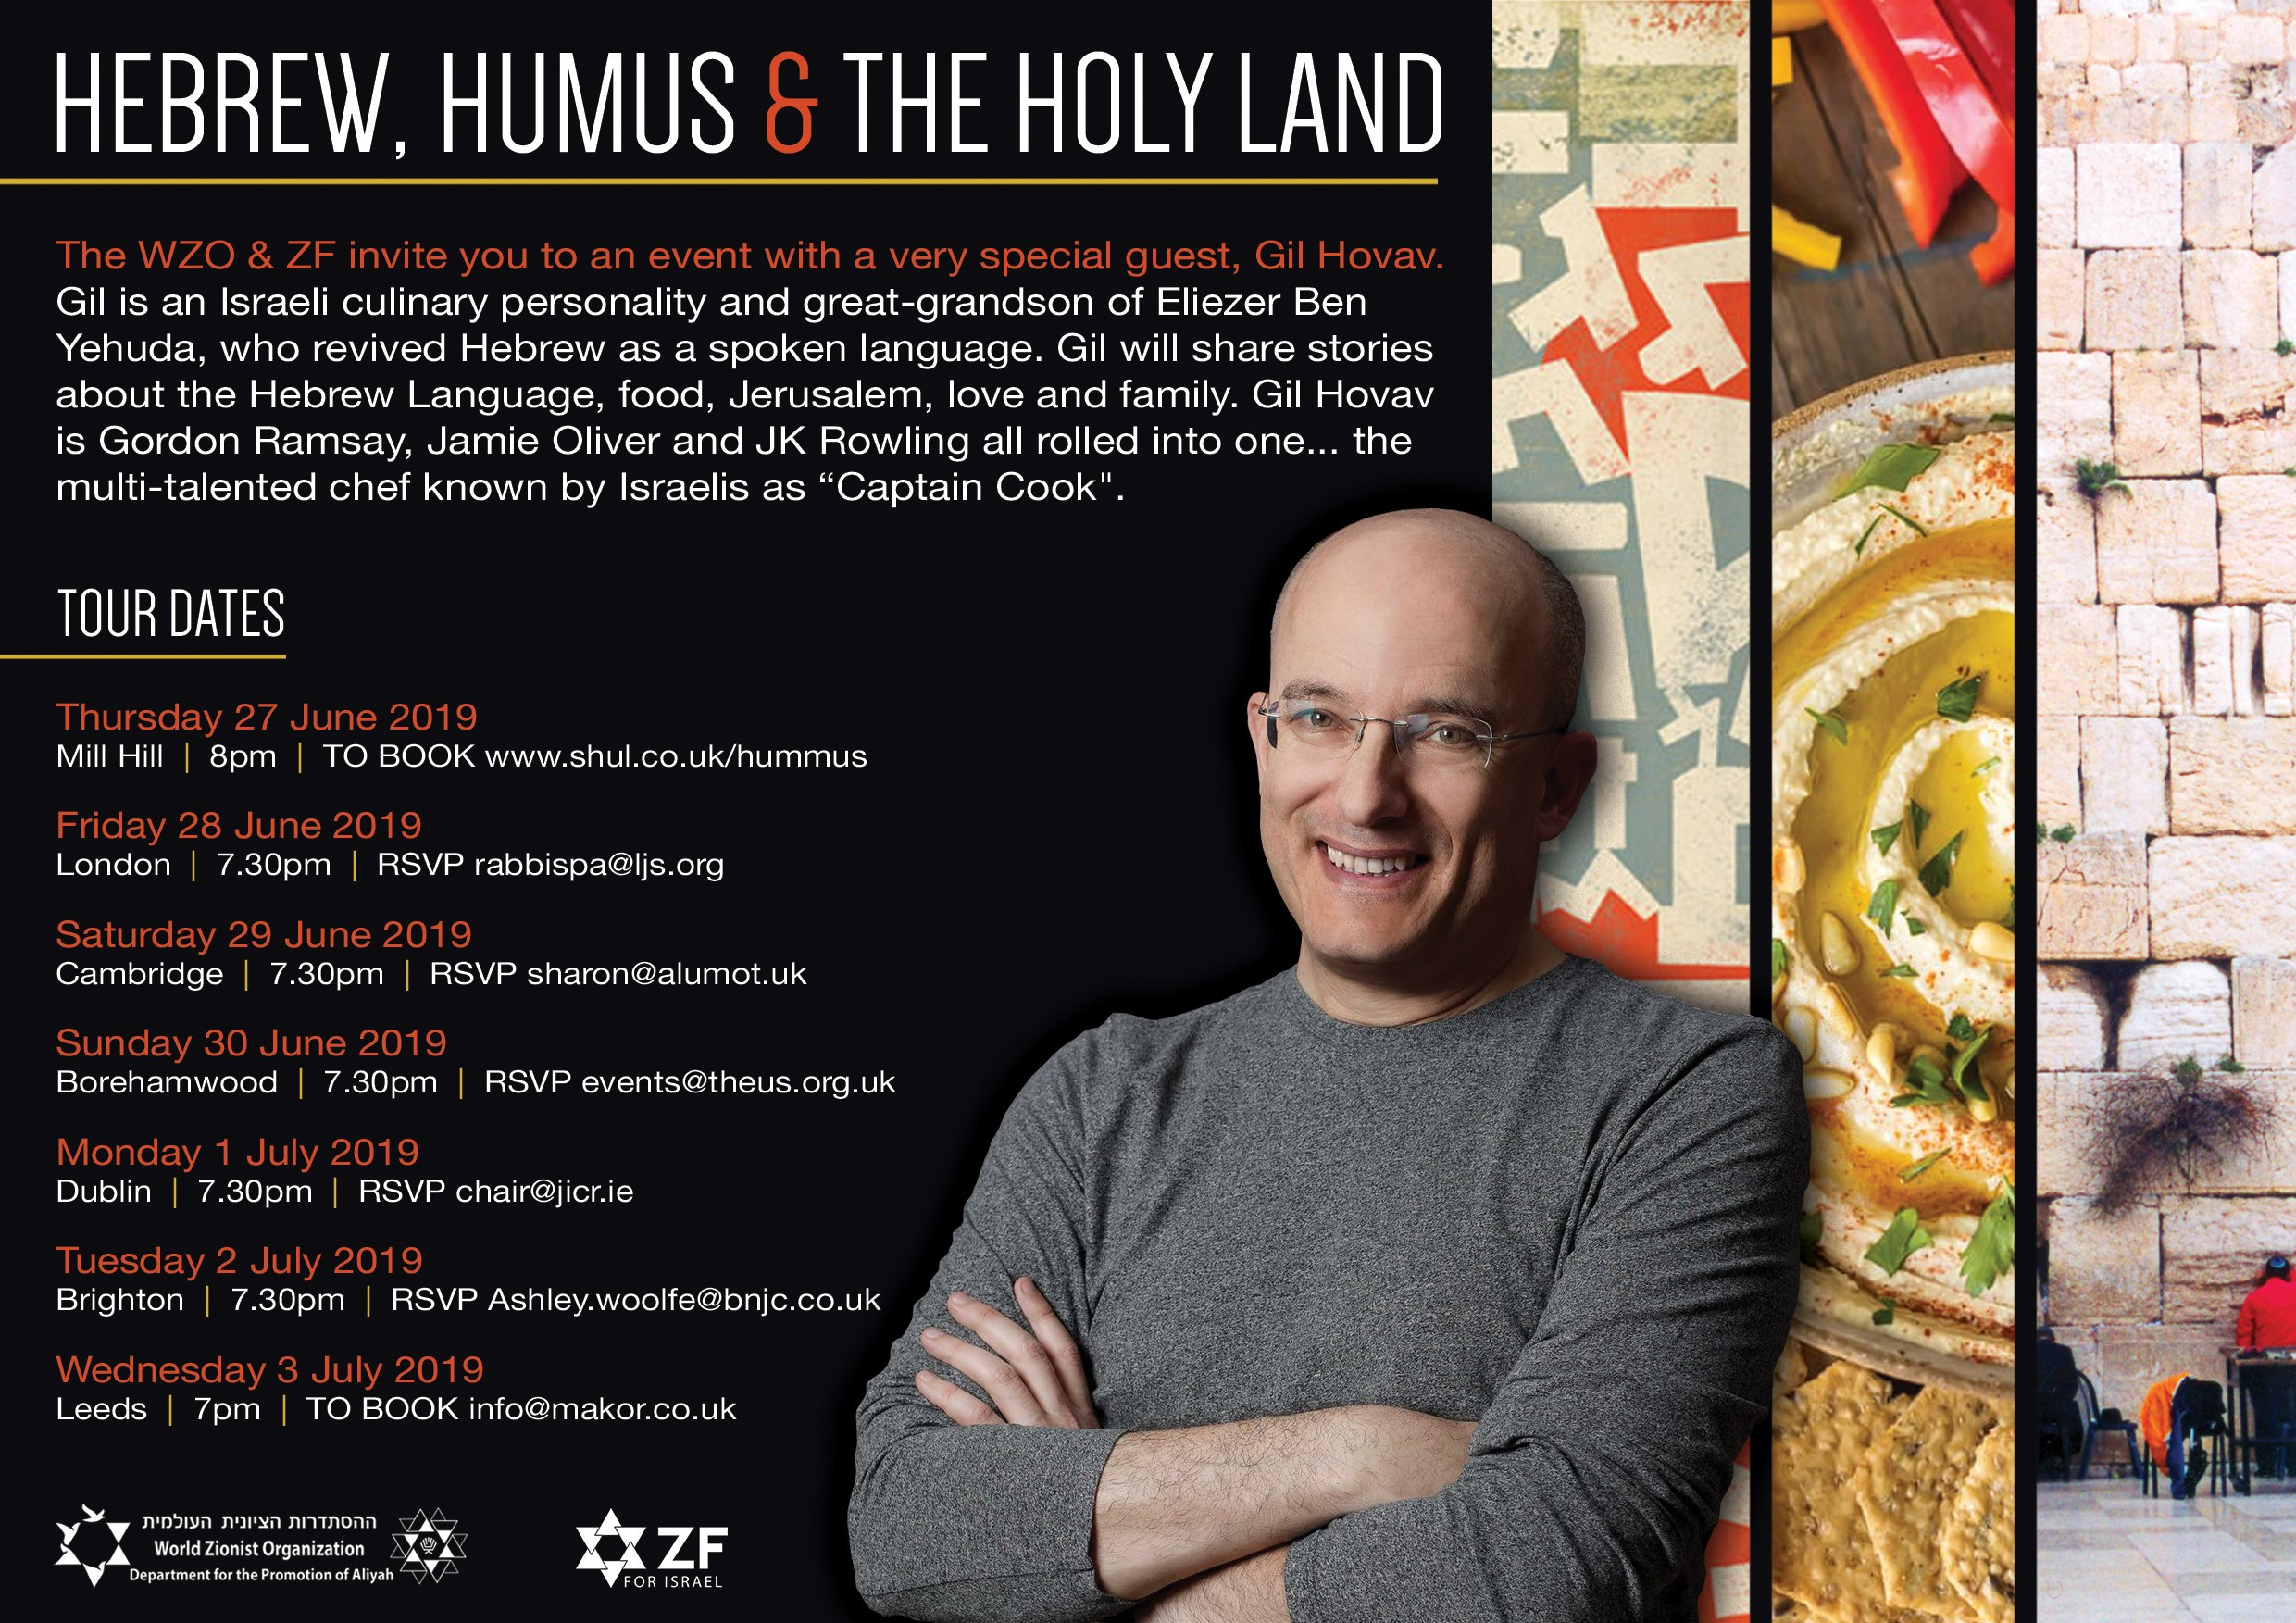 HEBREW, HUMOUS AND THE HOLY LAND FLYER